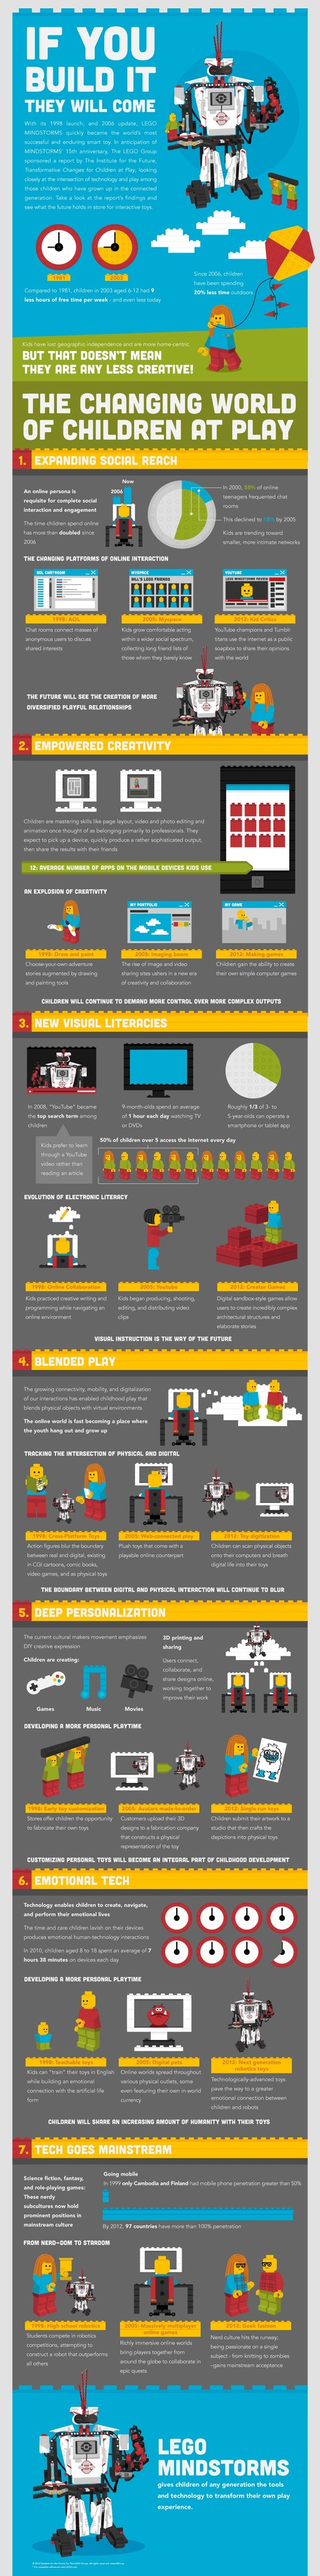 Let Children's Play (with Technology) Be Their Work in Education [Infographic] | Leveraging Information | Scoop.it